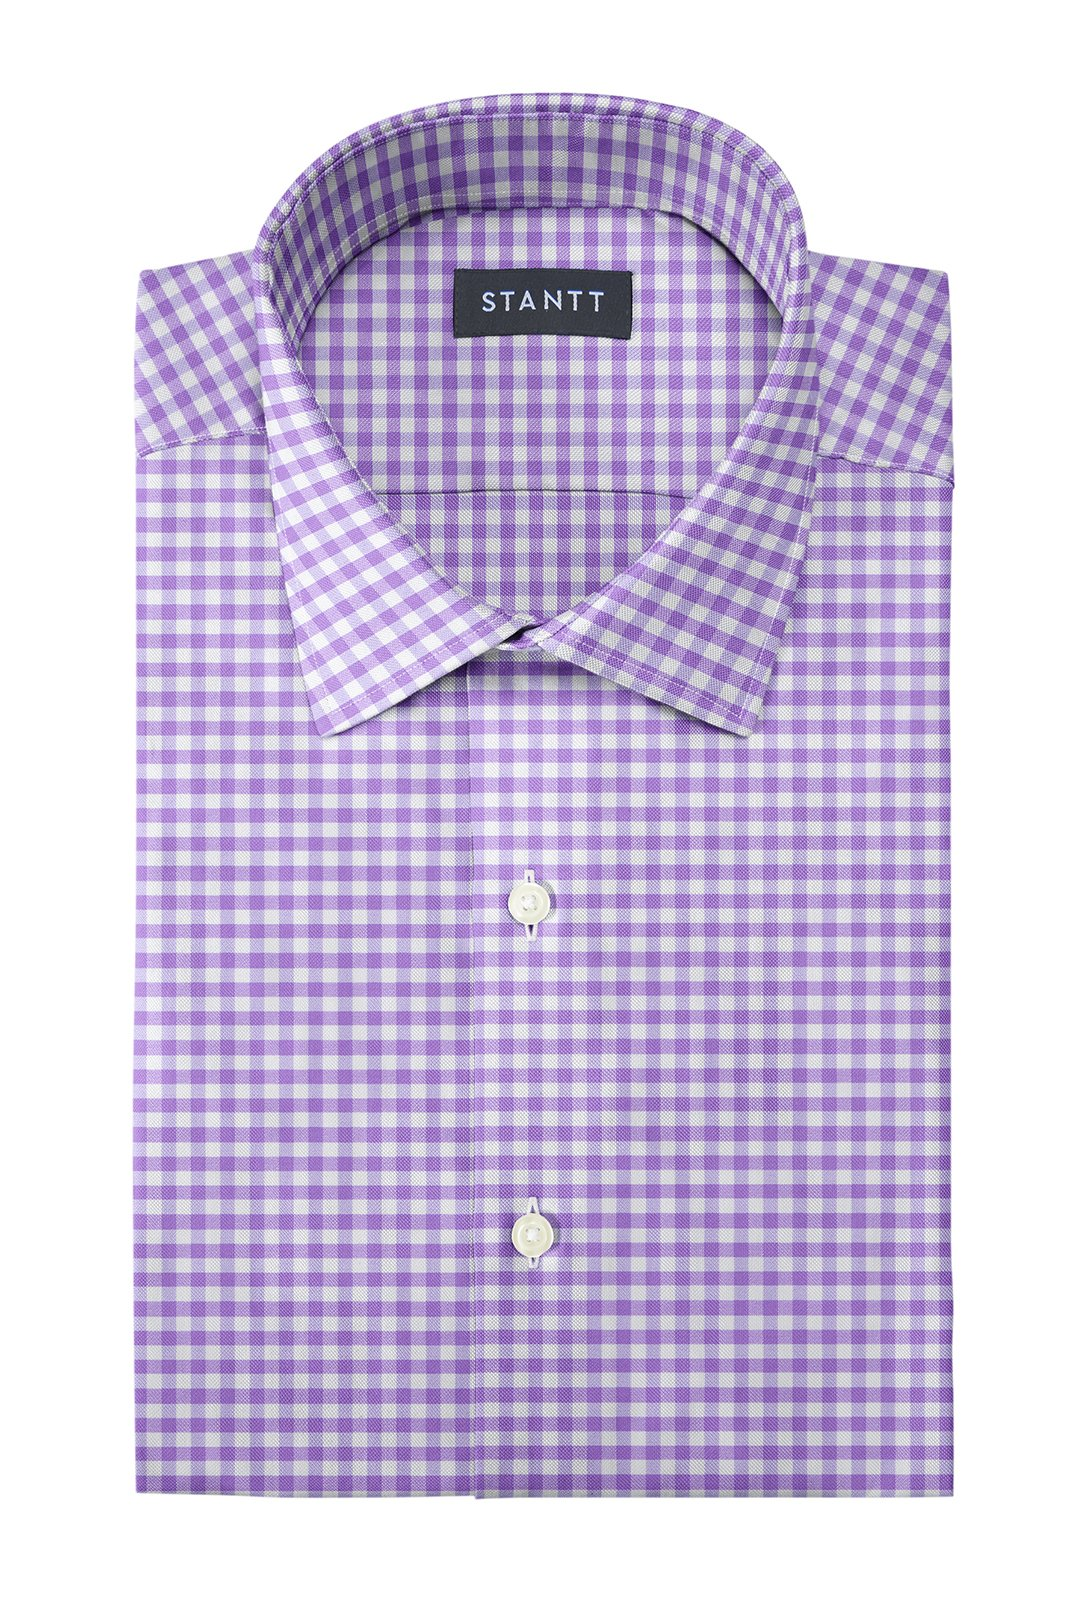 Performance Purple Gingham: Modified-Spread Collar, Barrel Cuff